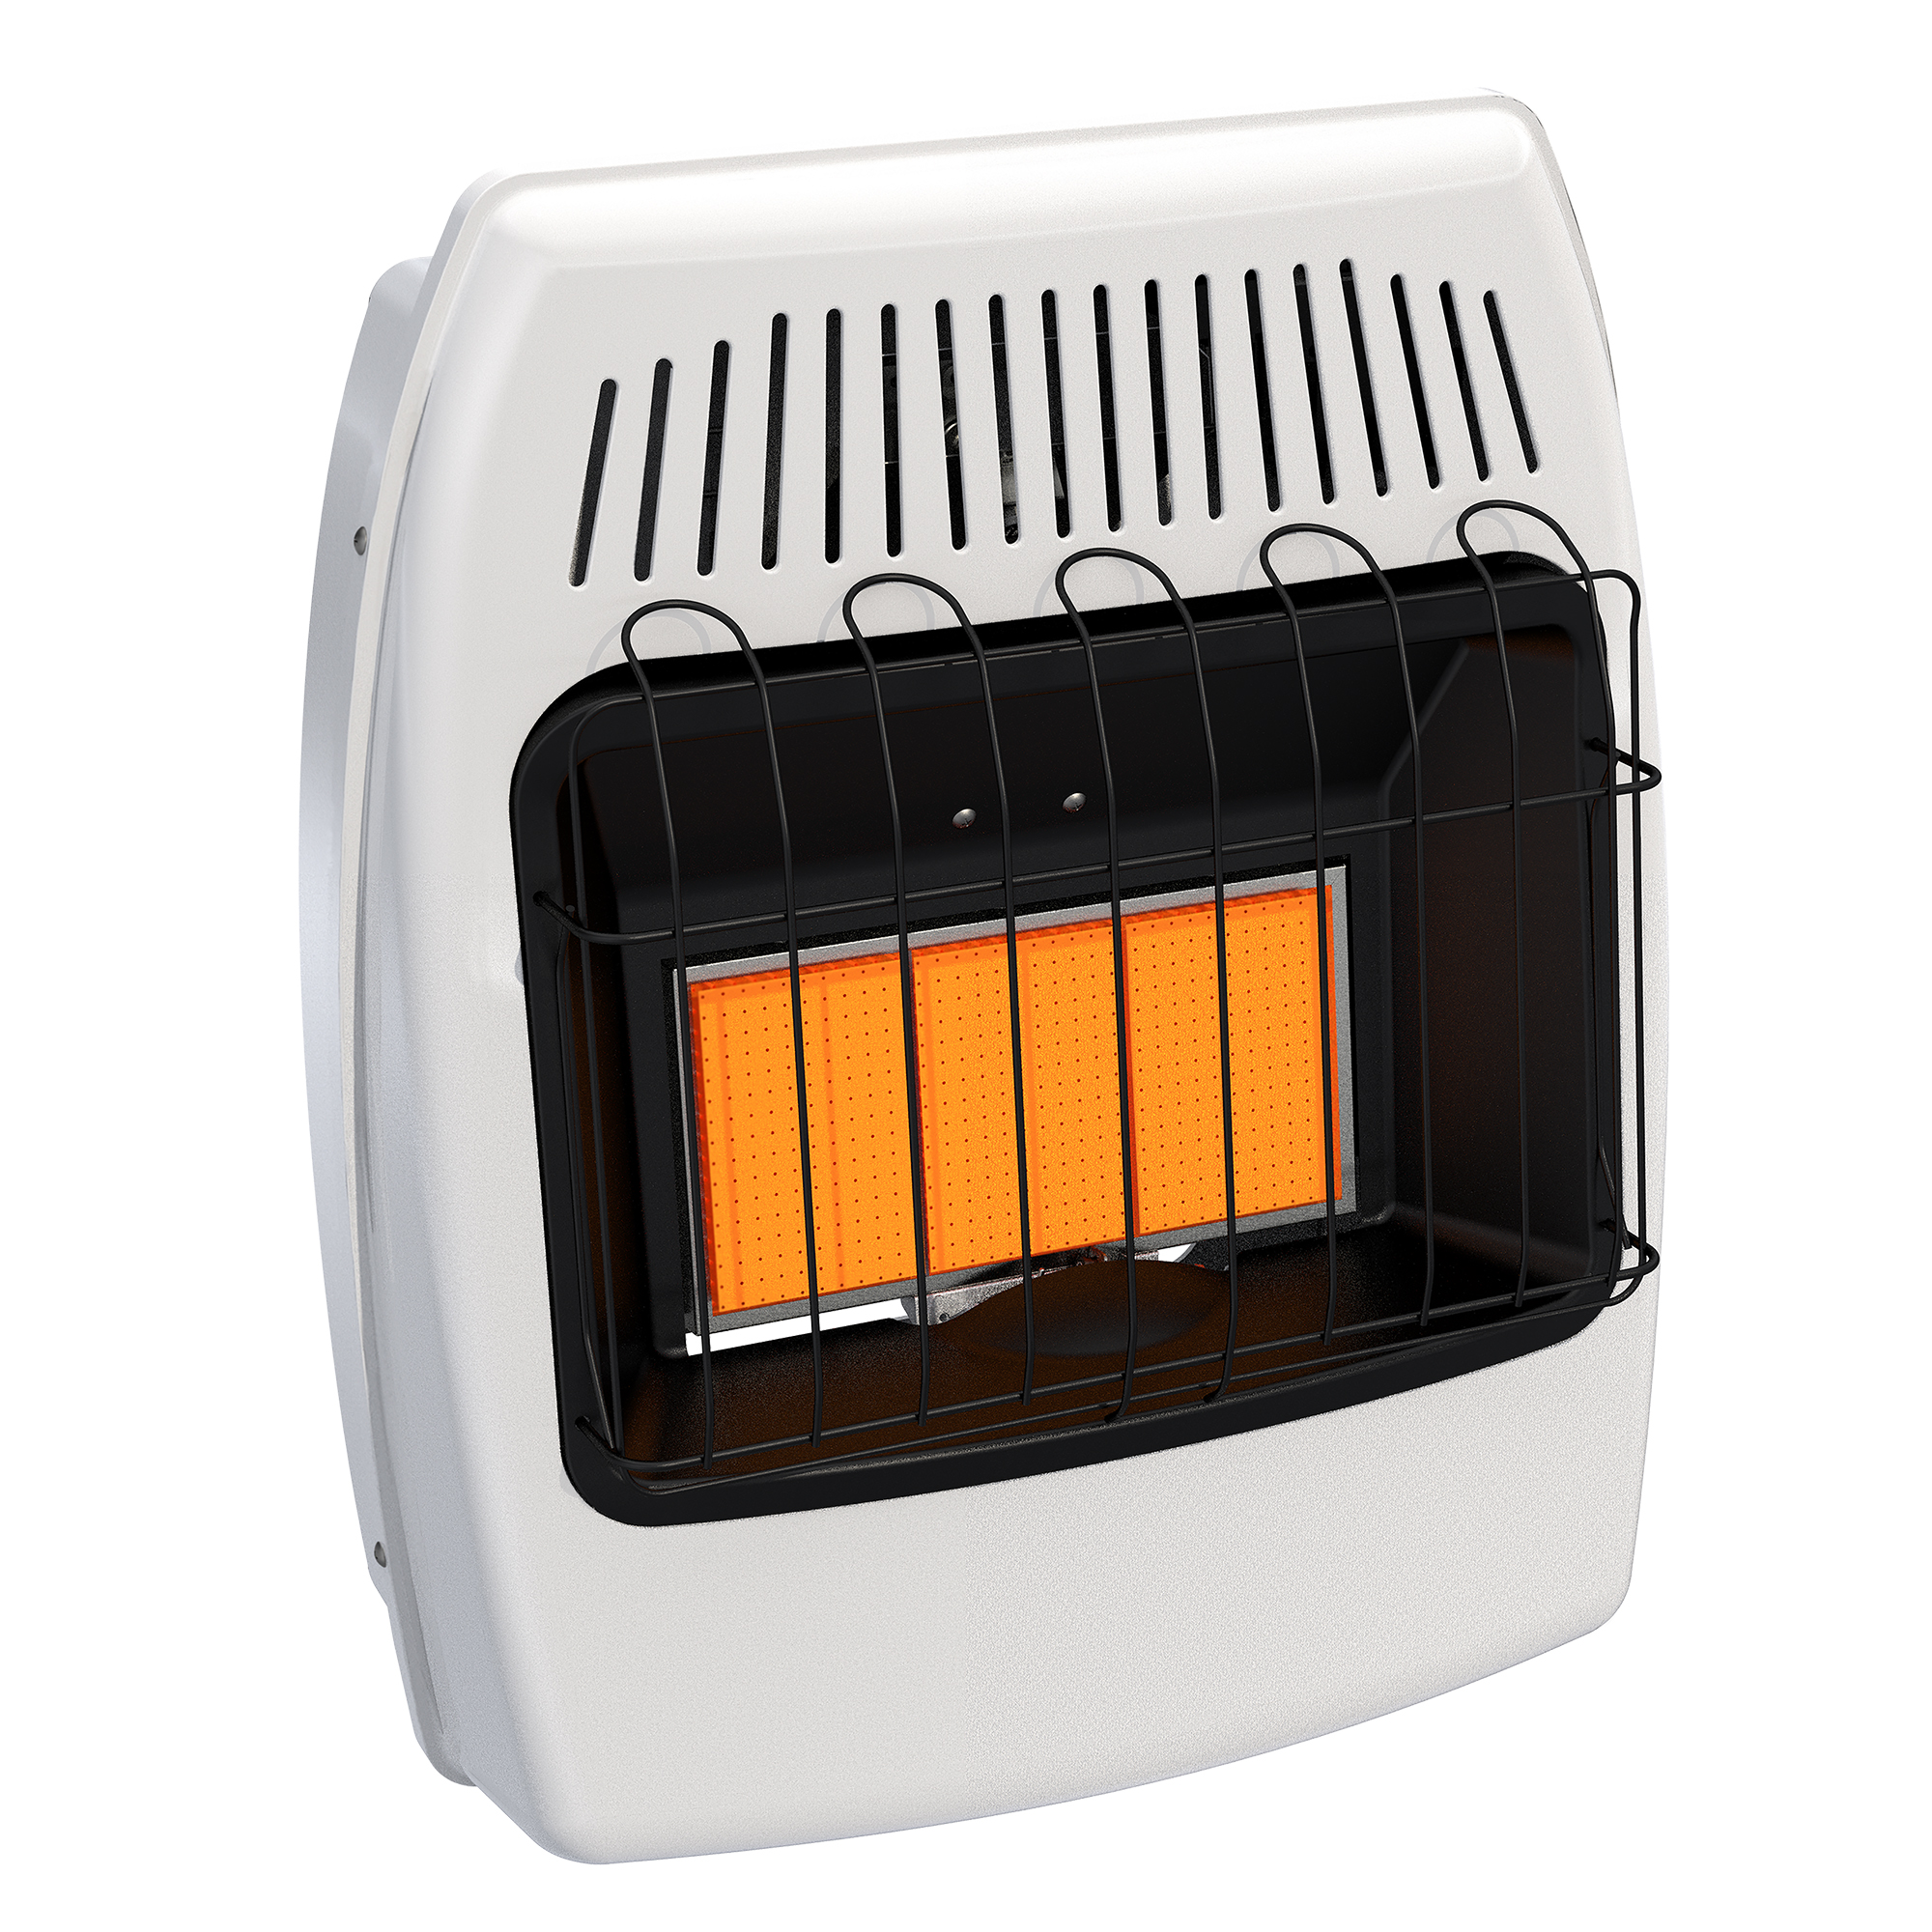 Dyna-Glo 18,000 BTU Natural Gas Infrared Vent Free Wall Heater